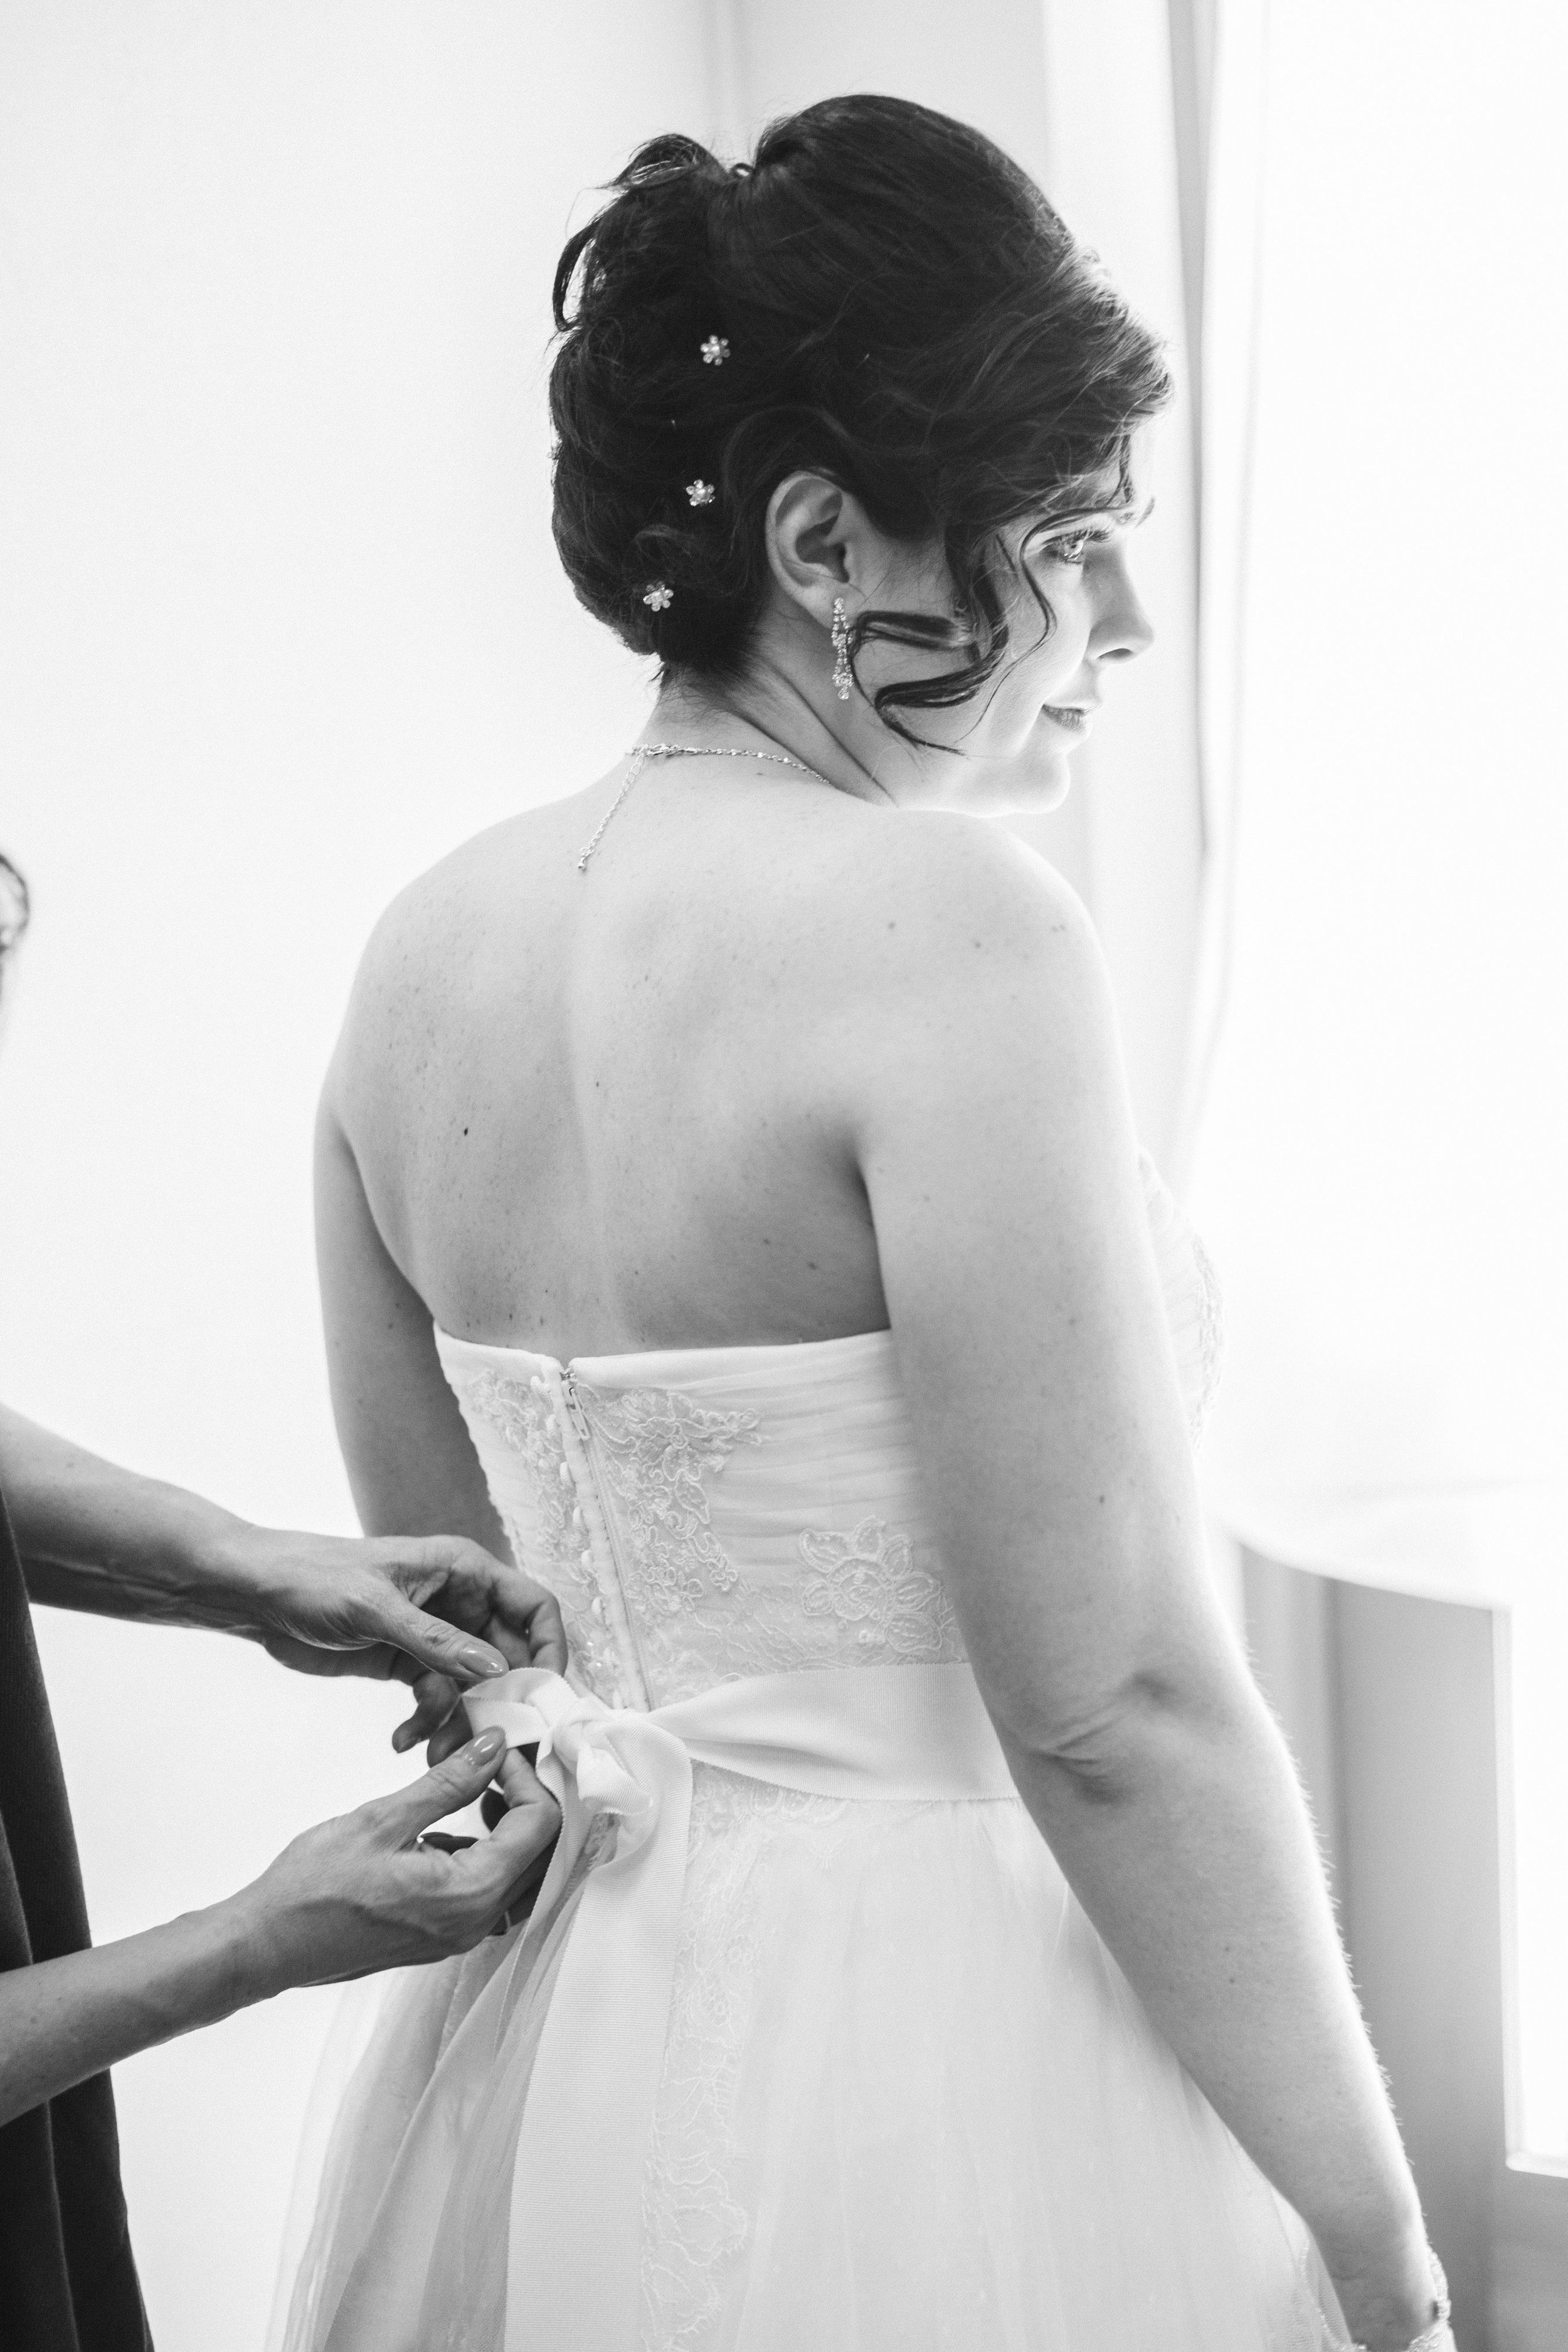 The Dress... - 4.Photographers recommend you don't wear a bra the morning of your wedding – it will leave marks on your back and shoulders that will be visible in pictures.